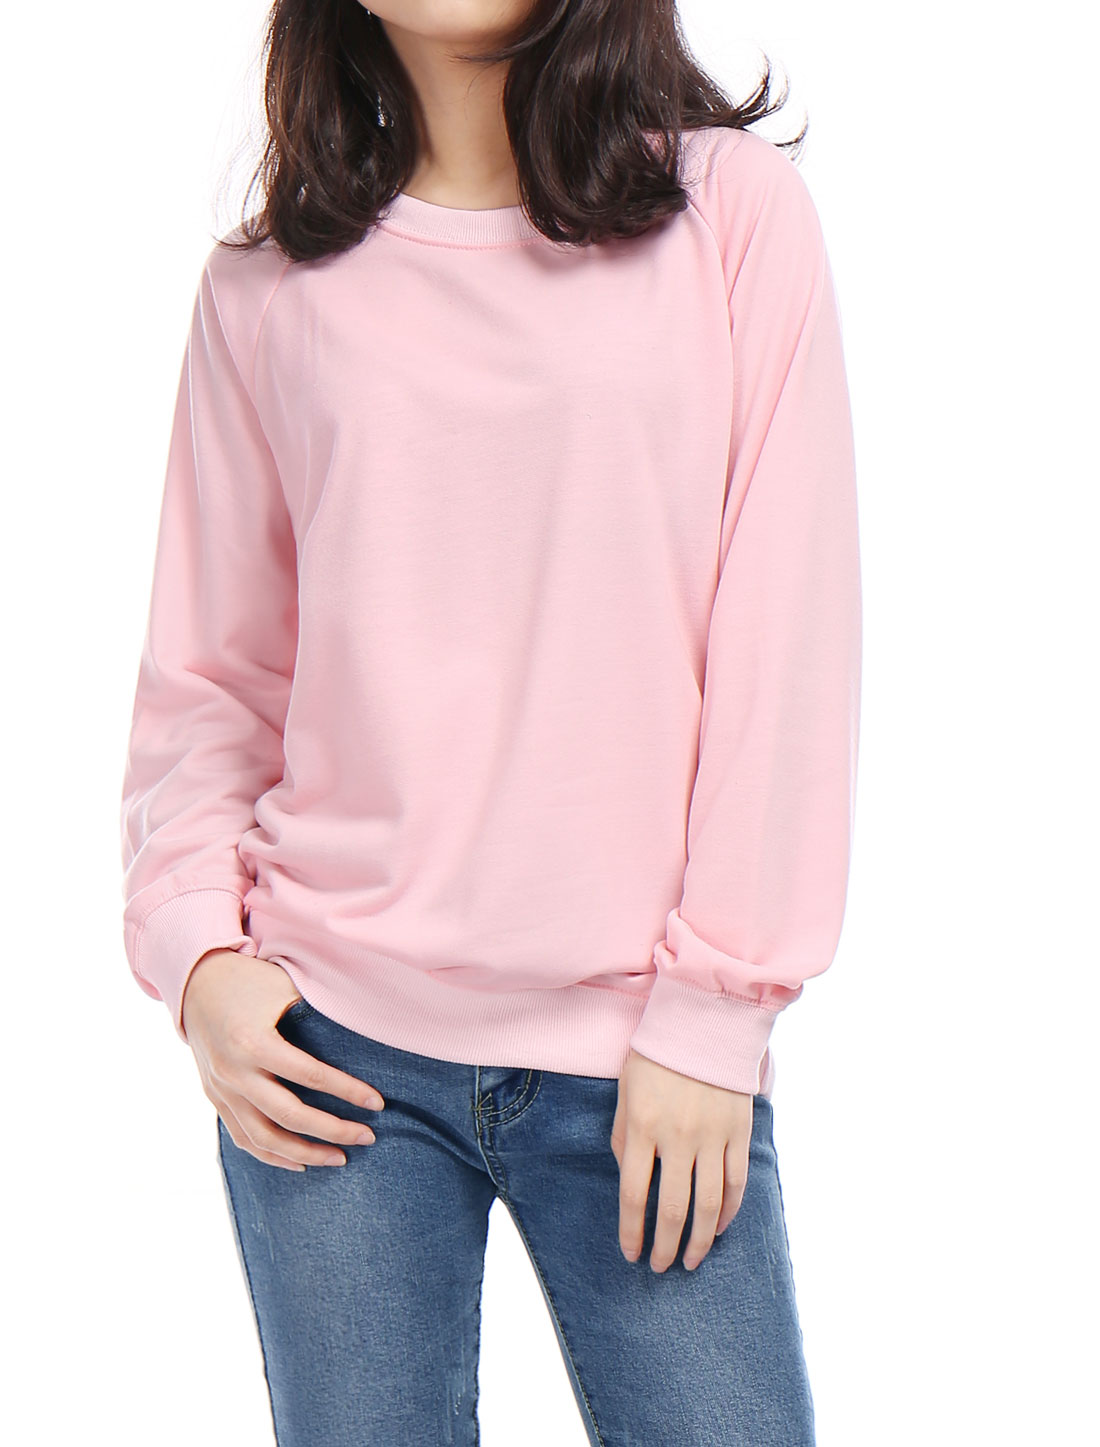 Ladies Ribbed Trim Crew Neck Long Raglan Sleeves Sweatshirt Pink XS